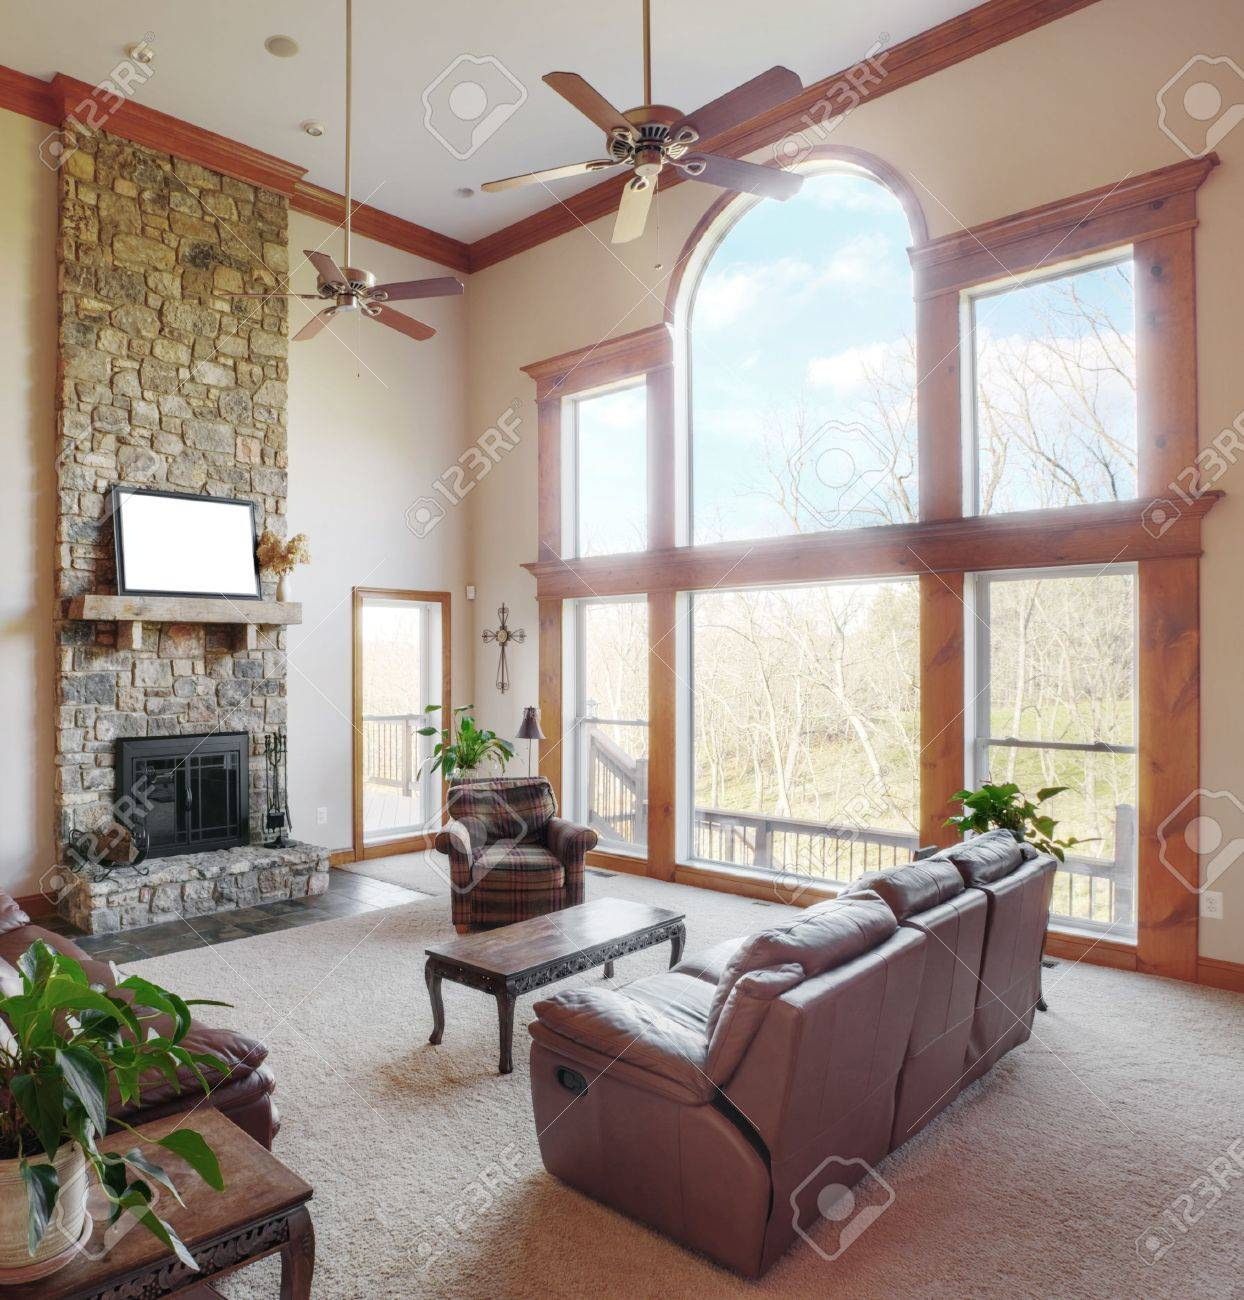 traditional living room interior with a high ceiling and large